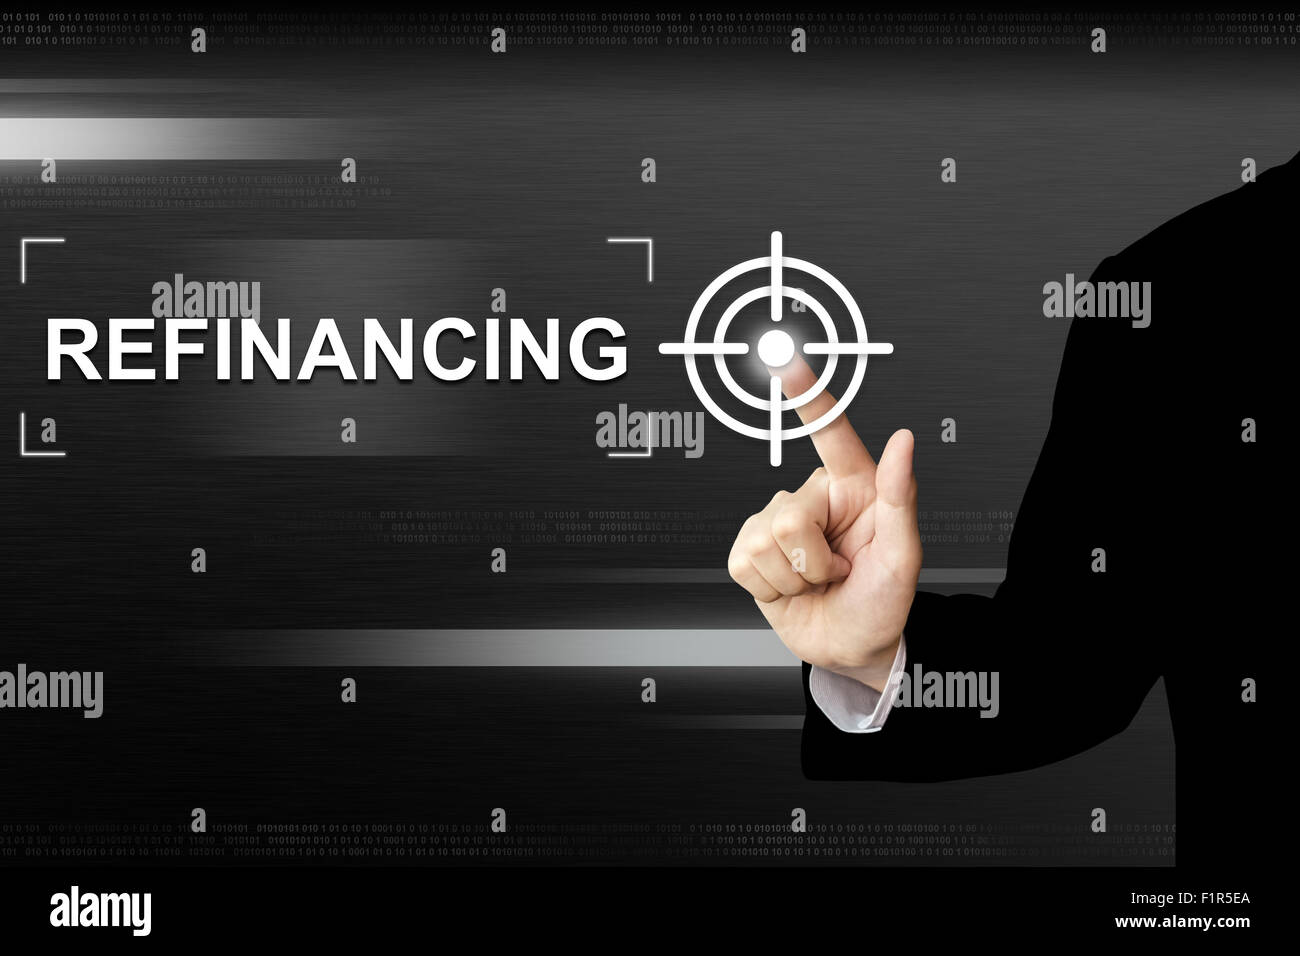 business hand clicking refinancing button on a touch screen interface - Stock Image